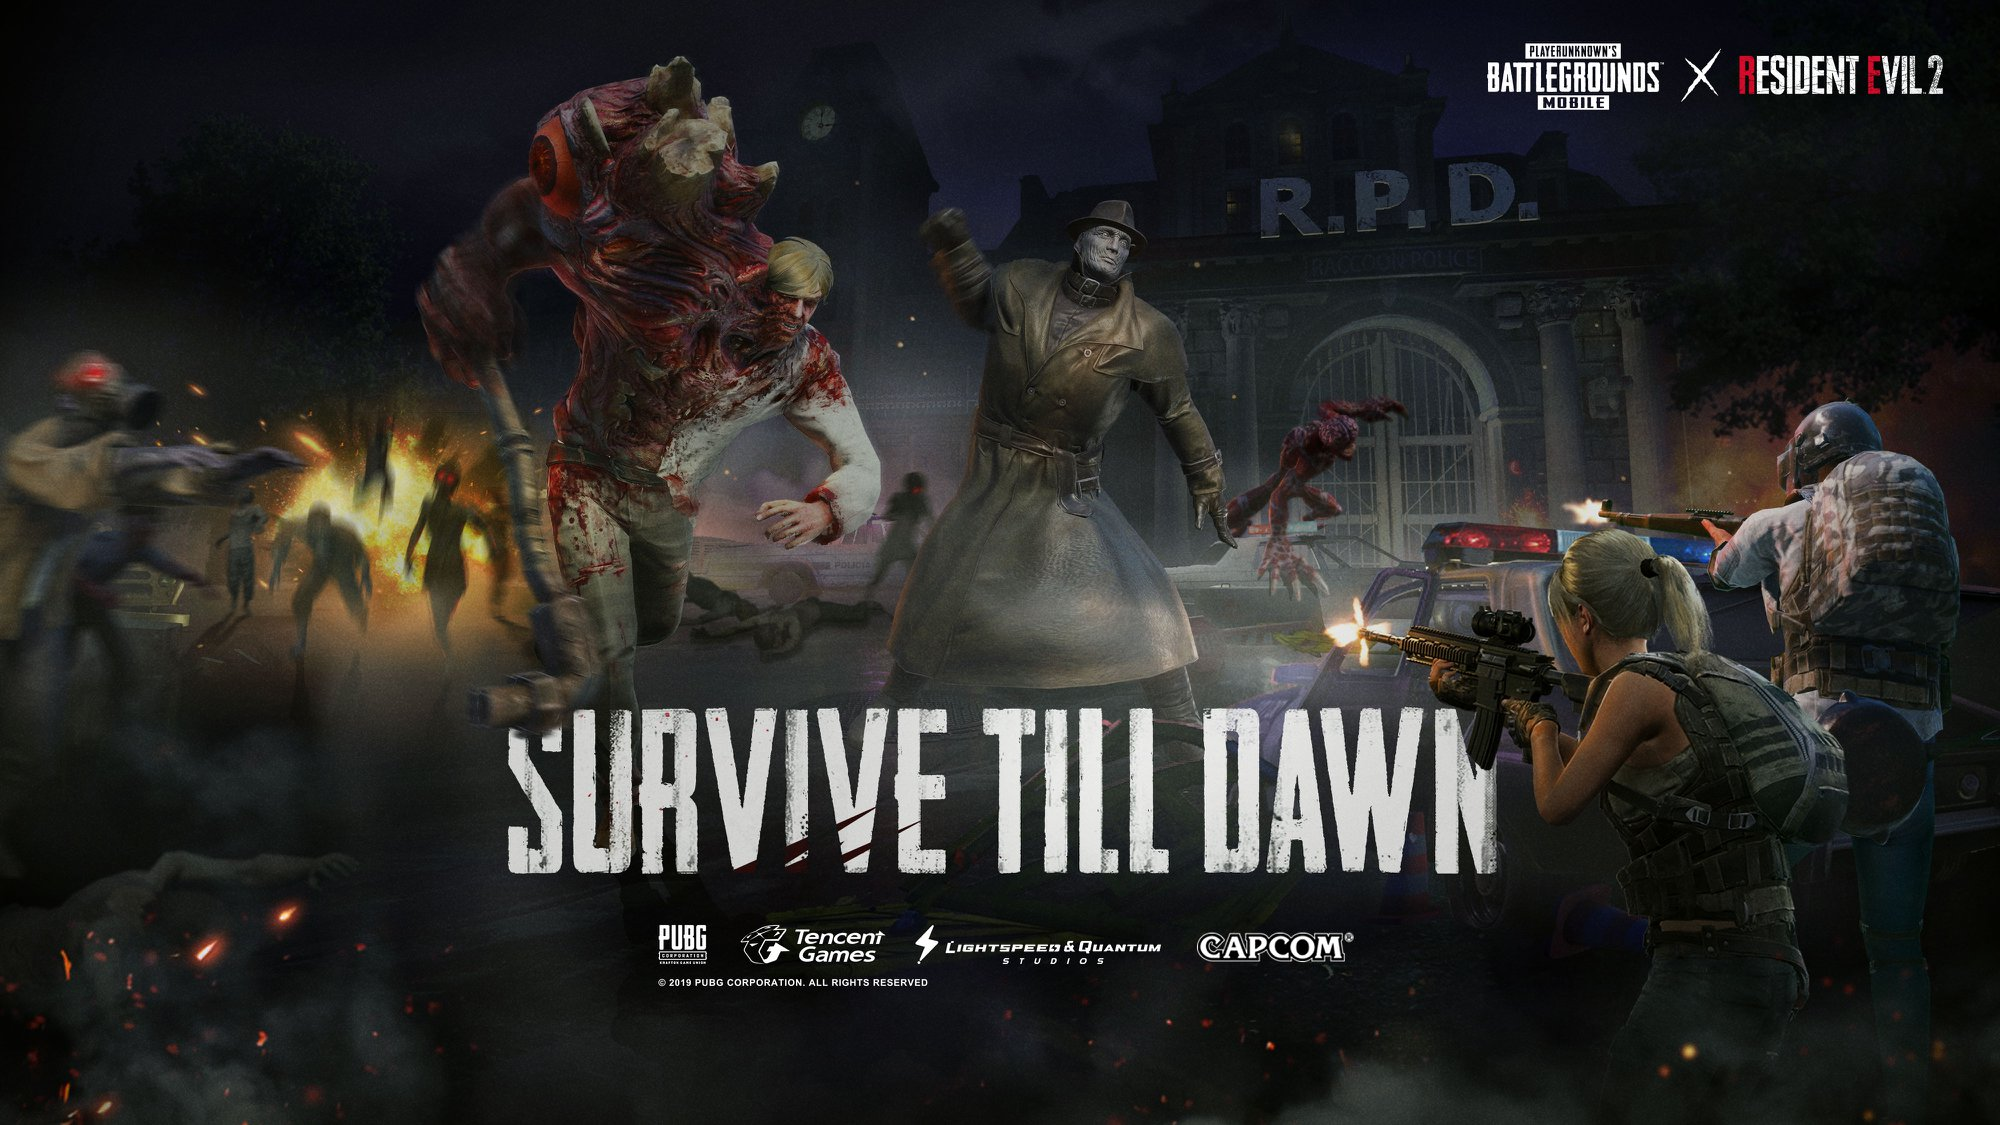 Pubg Mobile V0 11 0 Update Adds Resident Evil 2 Zombies In A New - resident evil 2 on consoles and pc that s been overwhelmingly received as a success so in an effort to capitalize on the game s pop!   ularity pubg mobile